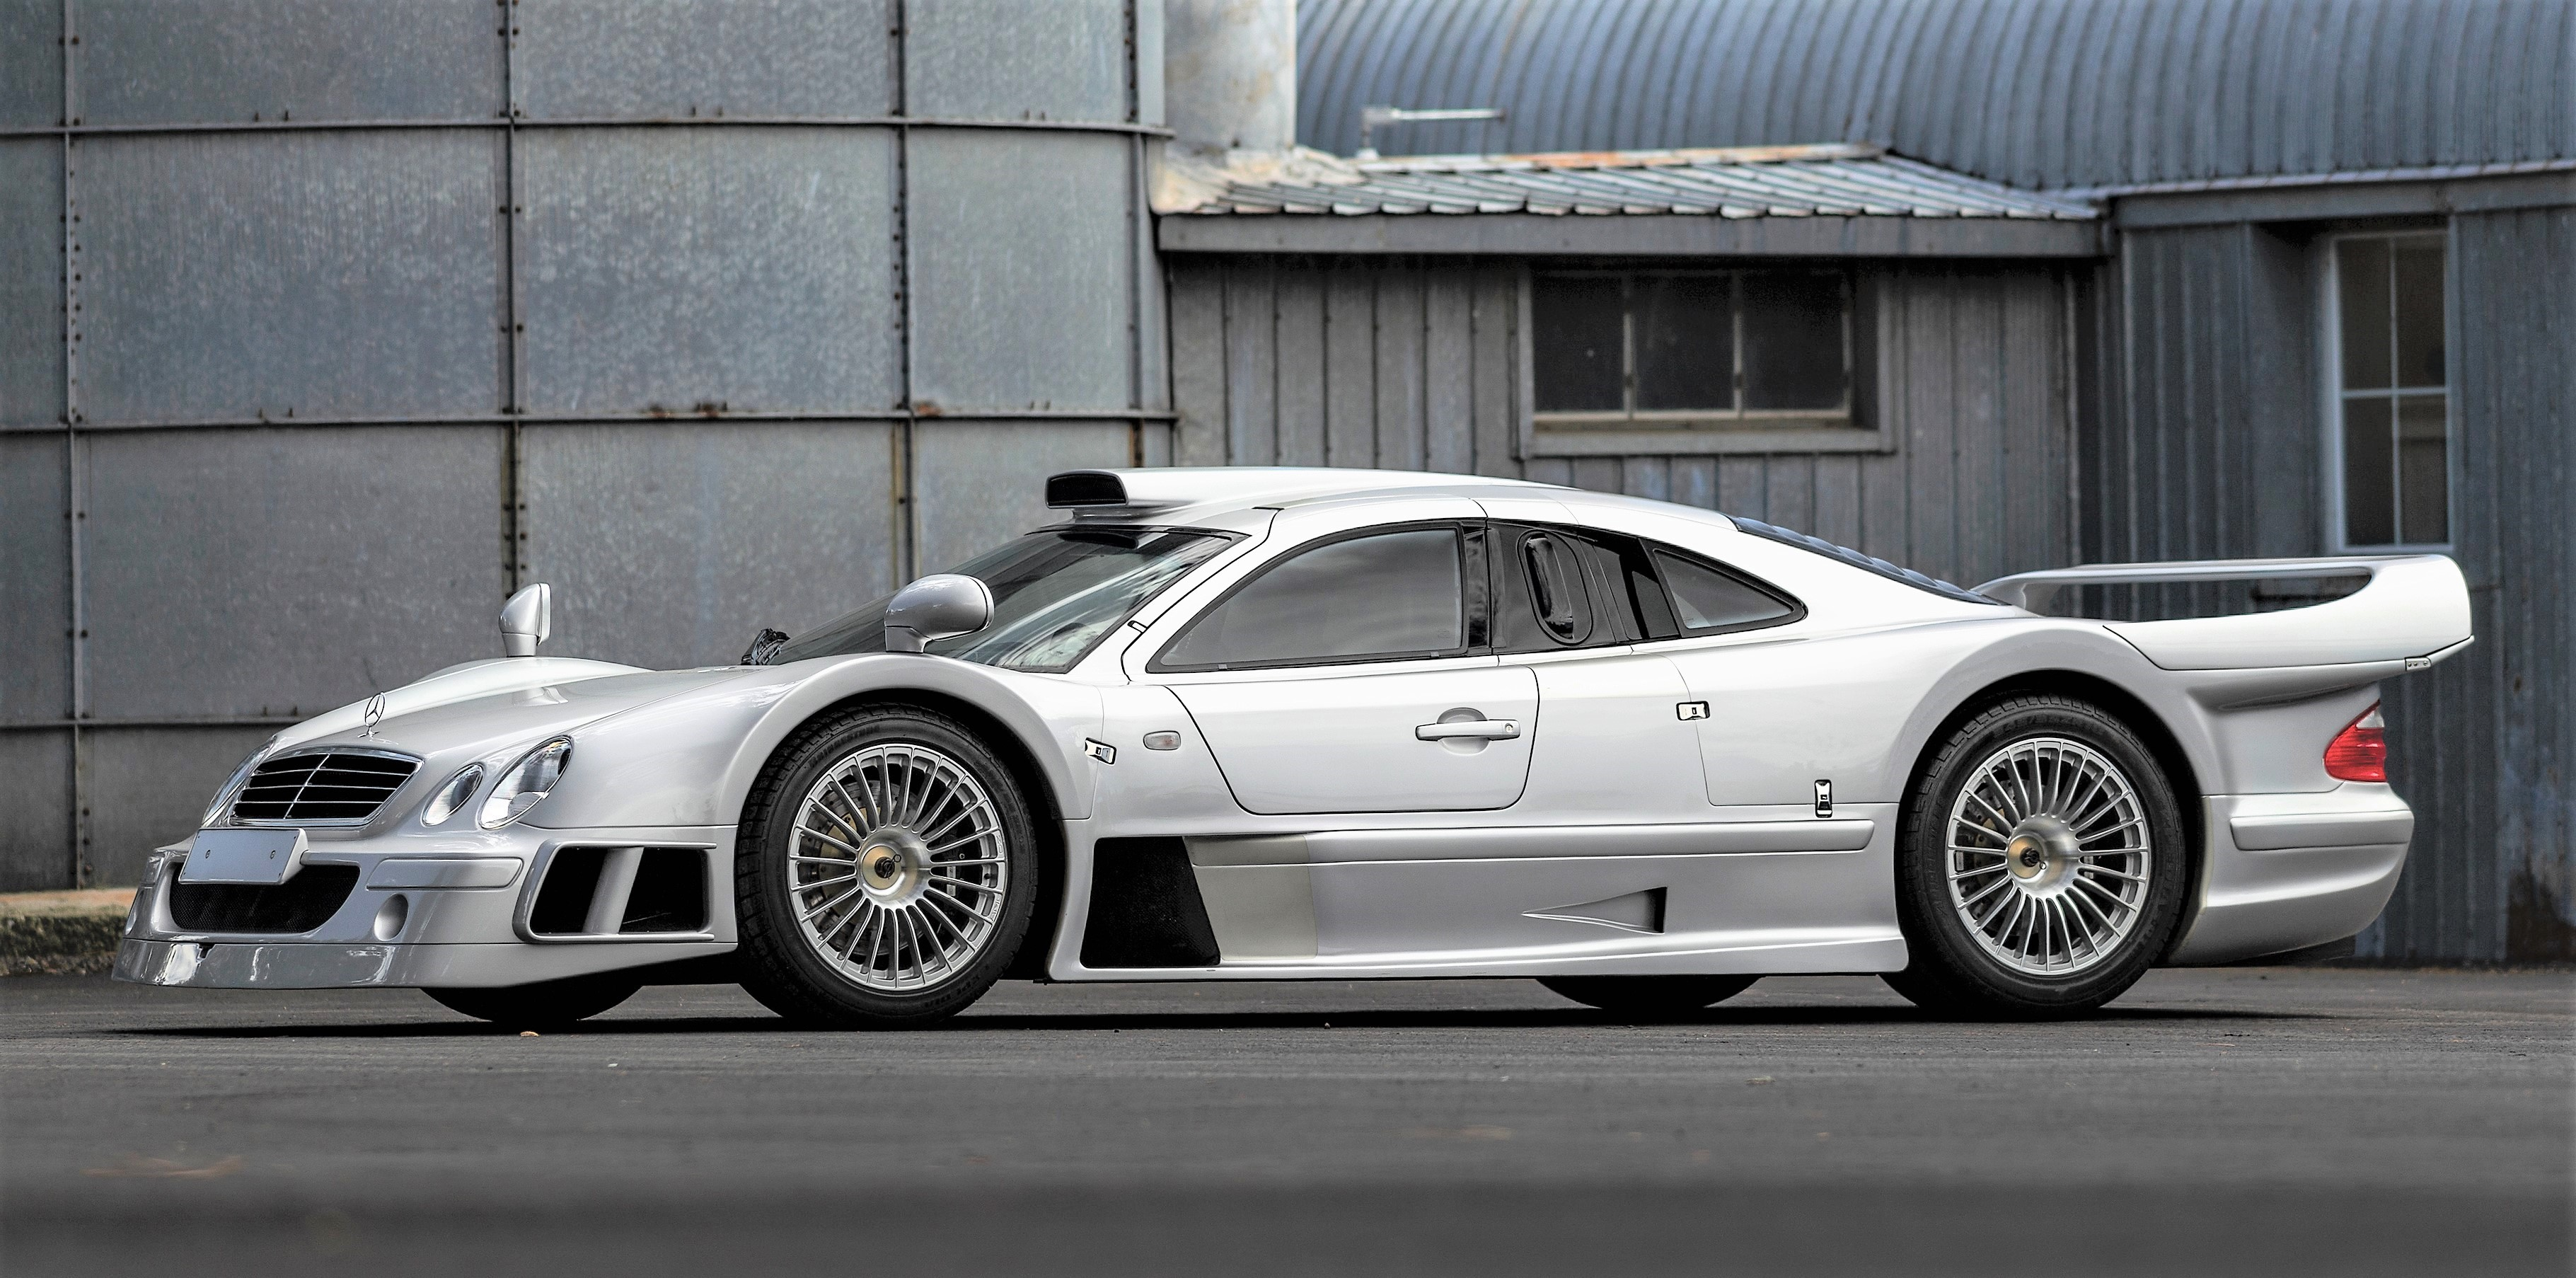 Mercedes Benz Clk Gtr >> Mercedes Benz Amg Clk Gtr Might Sell For More Than 5 Million